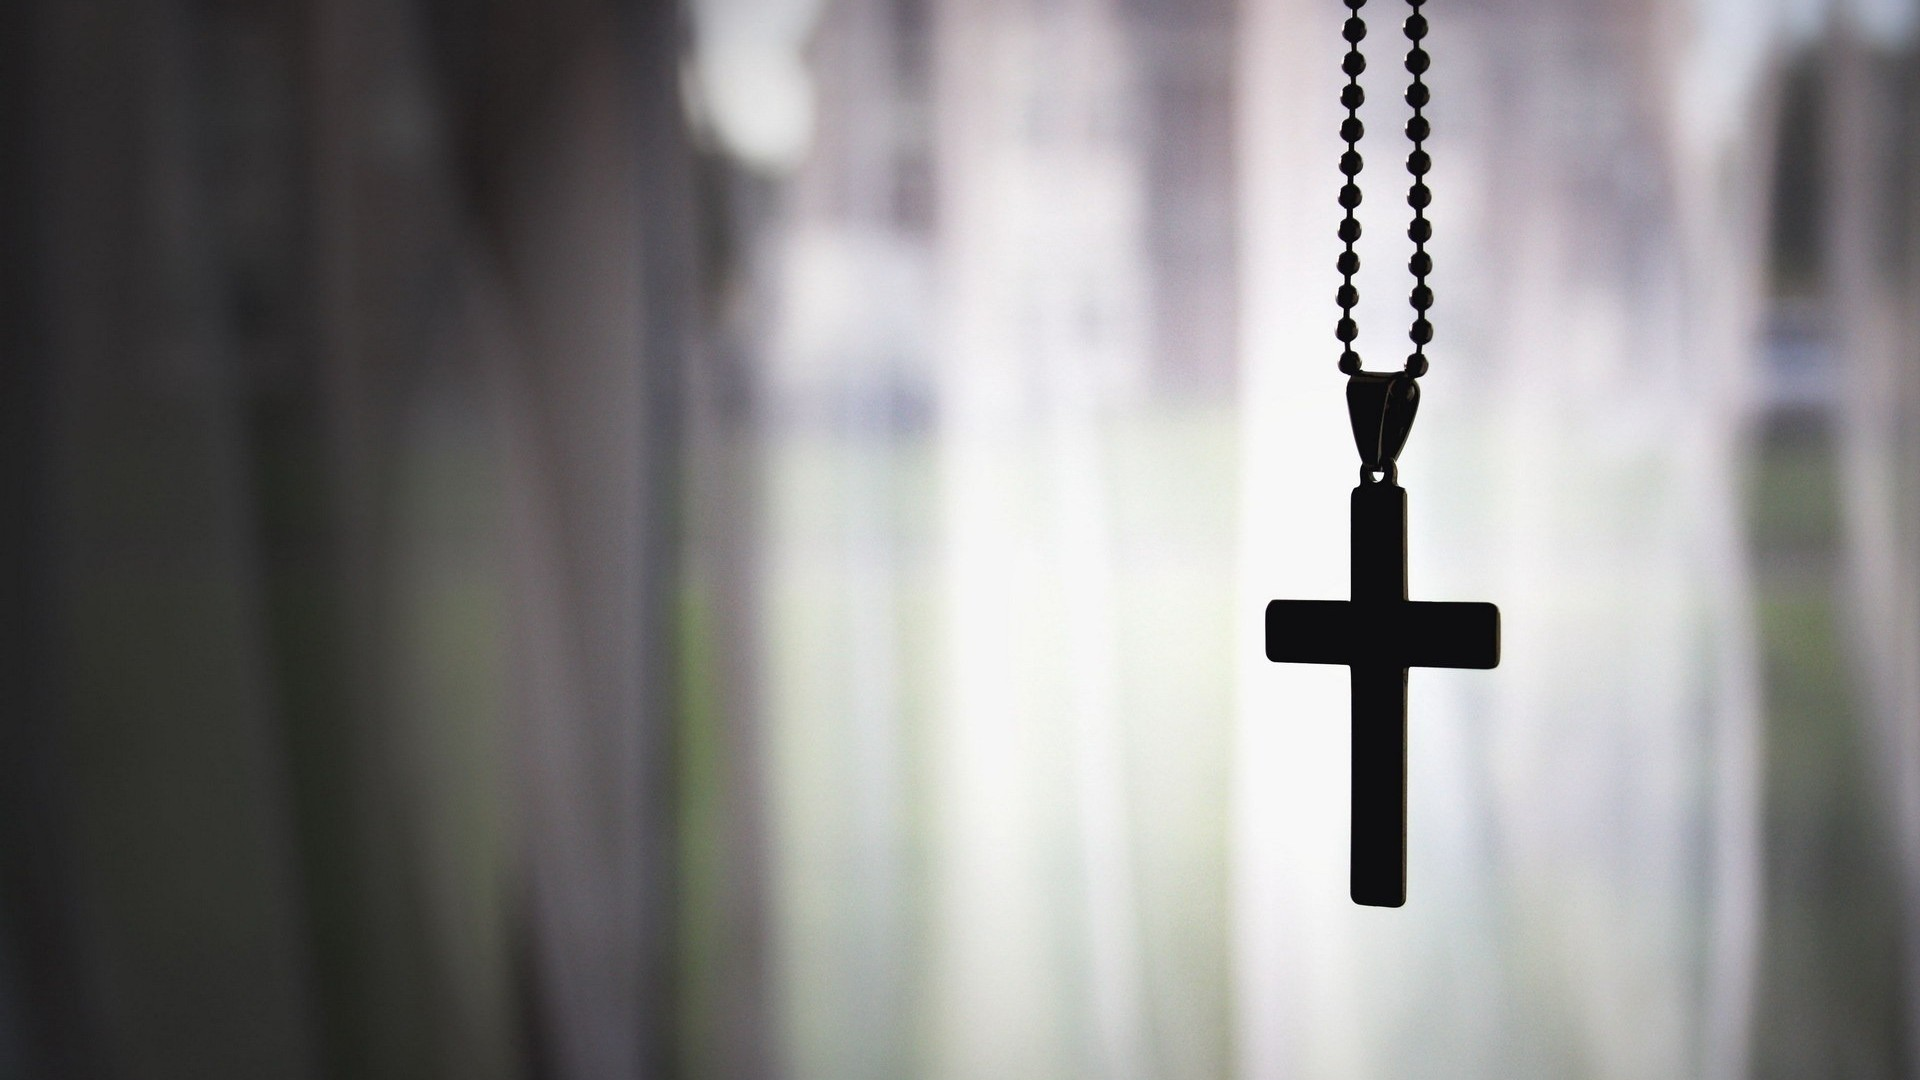 Cross wallpaper   Wallpaper Wide HD